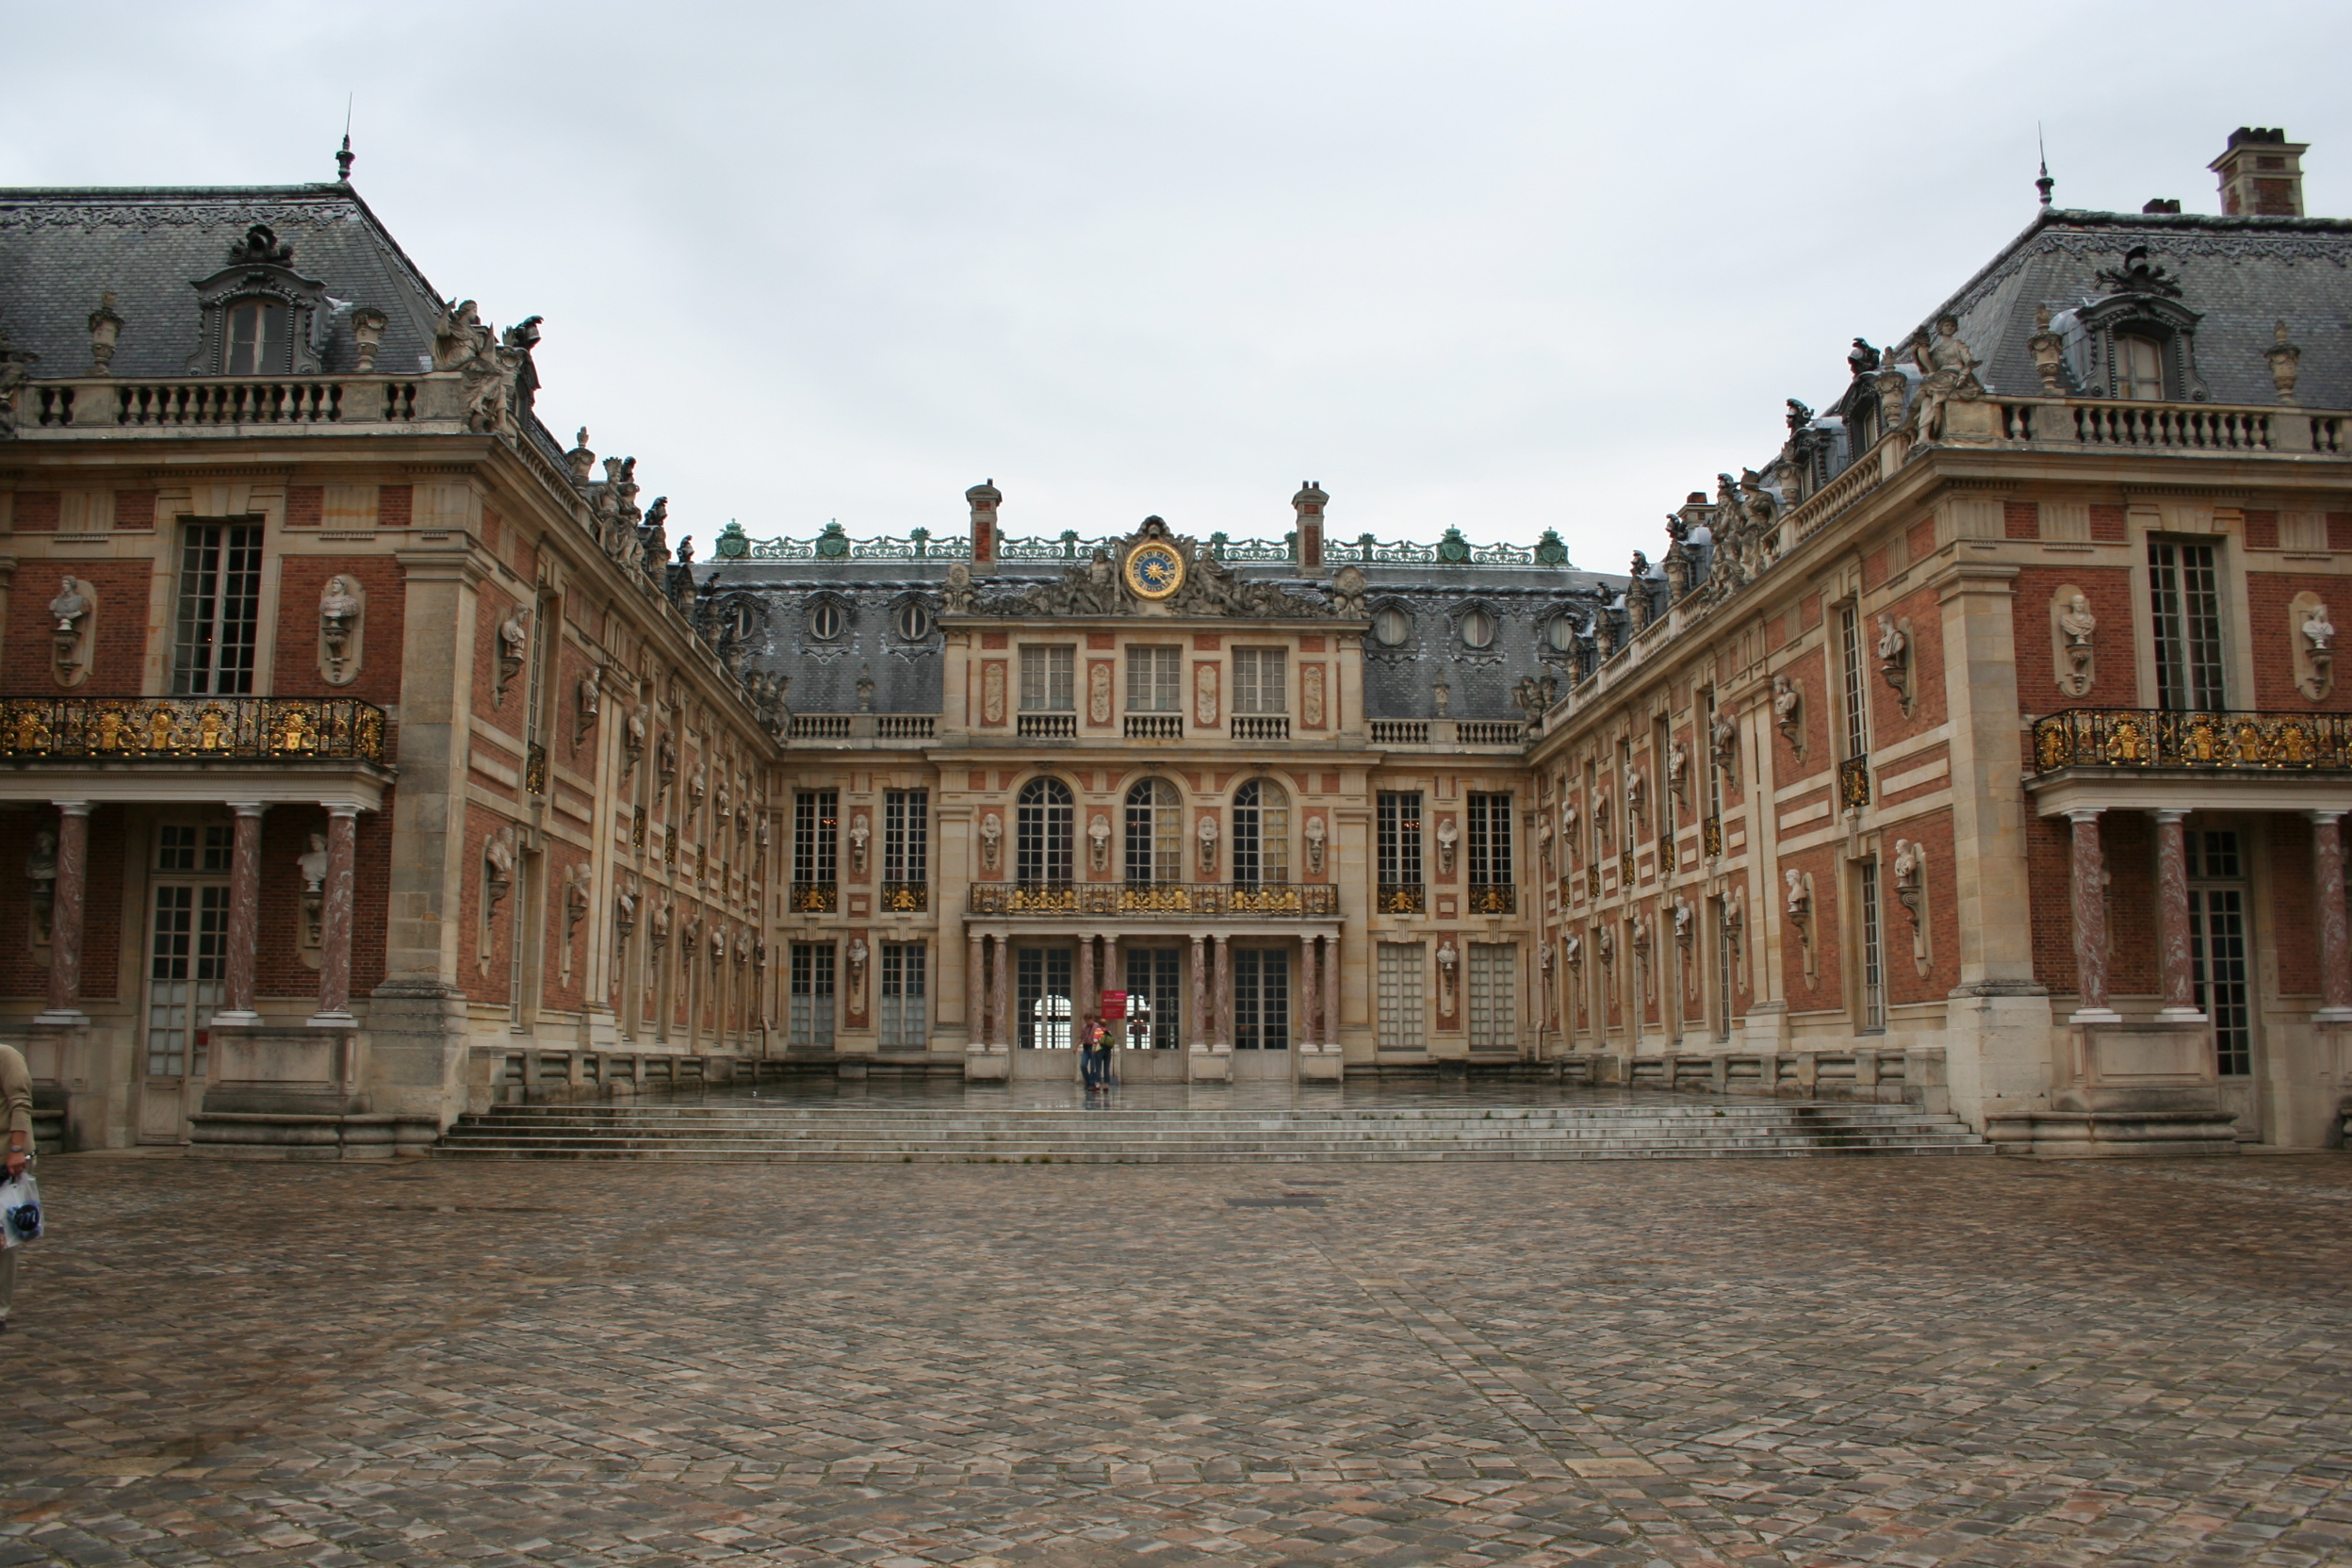 https://upload.wikimedia.org/wikipedia/commons/4/40/Palace_of_versailles%2C_part.JPG